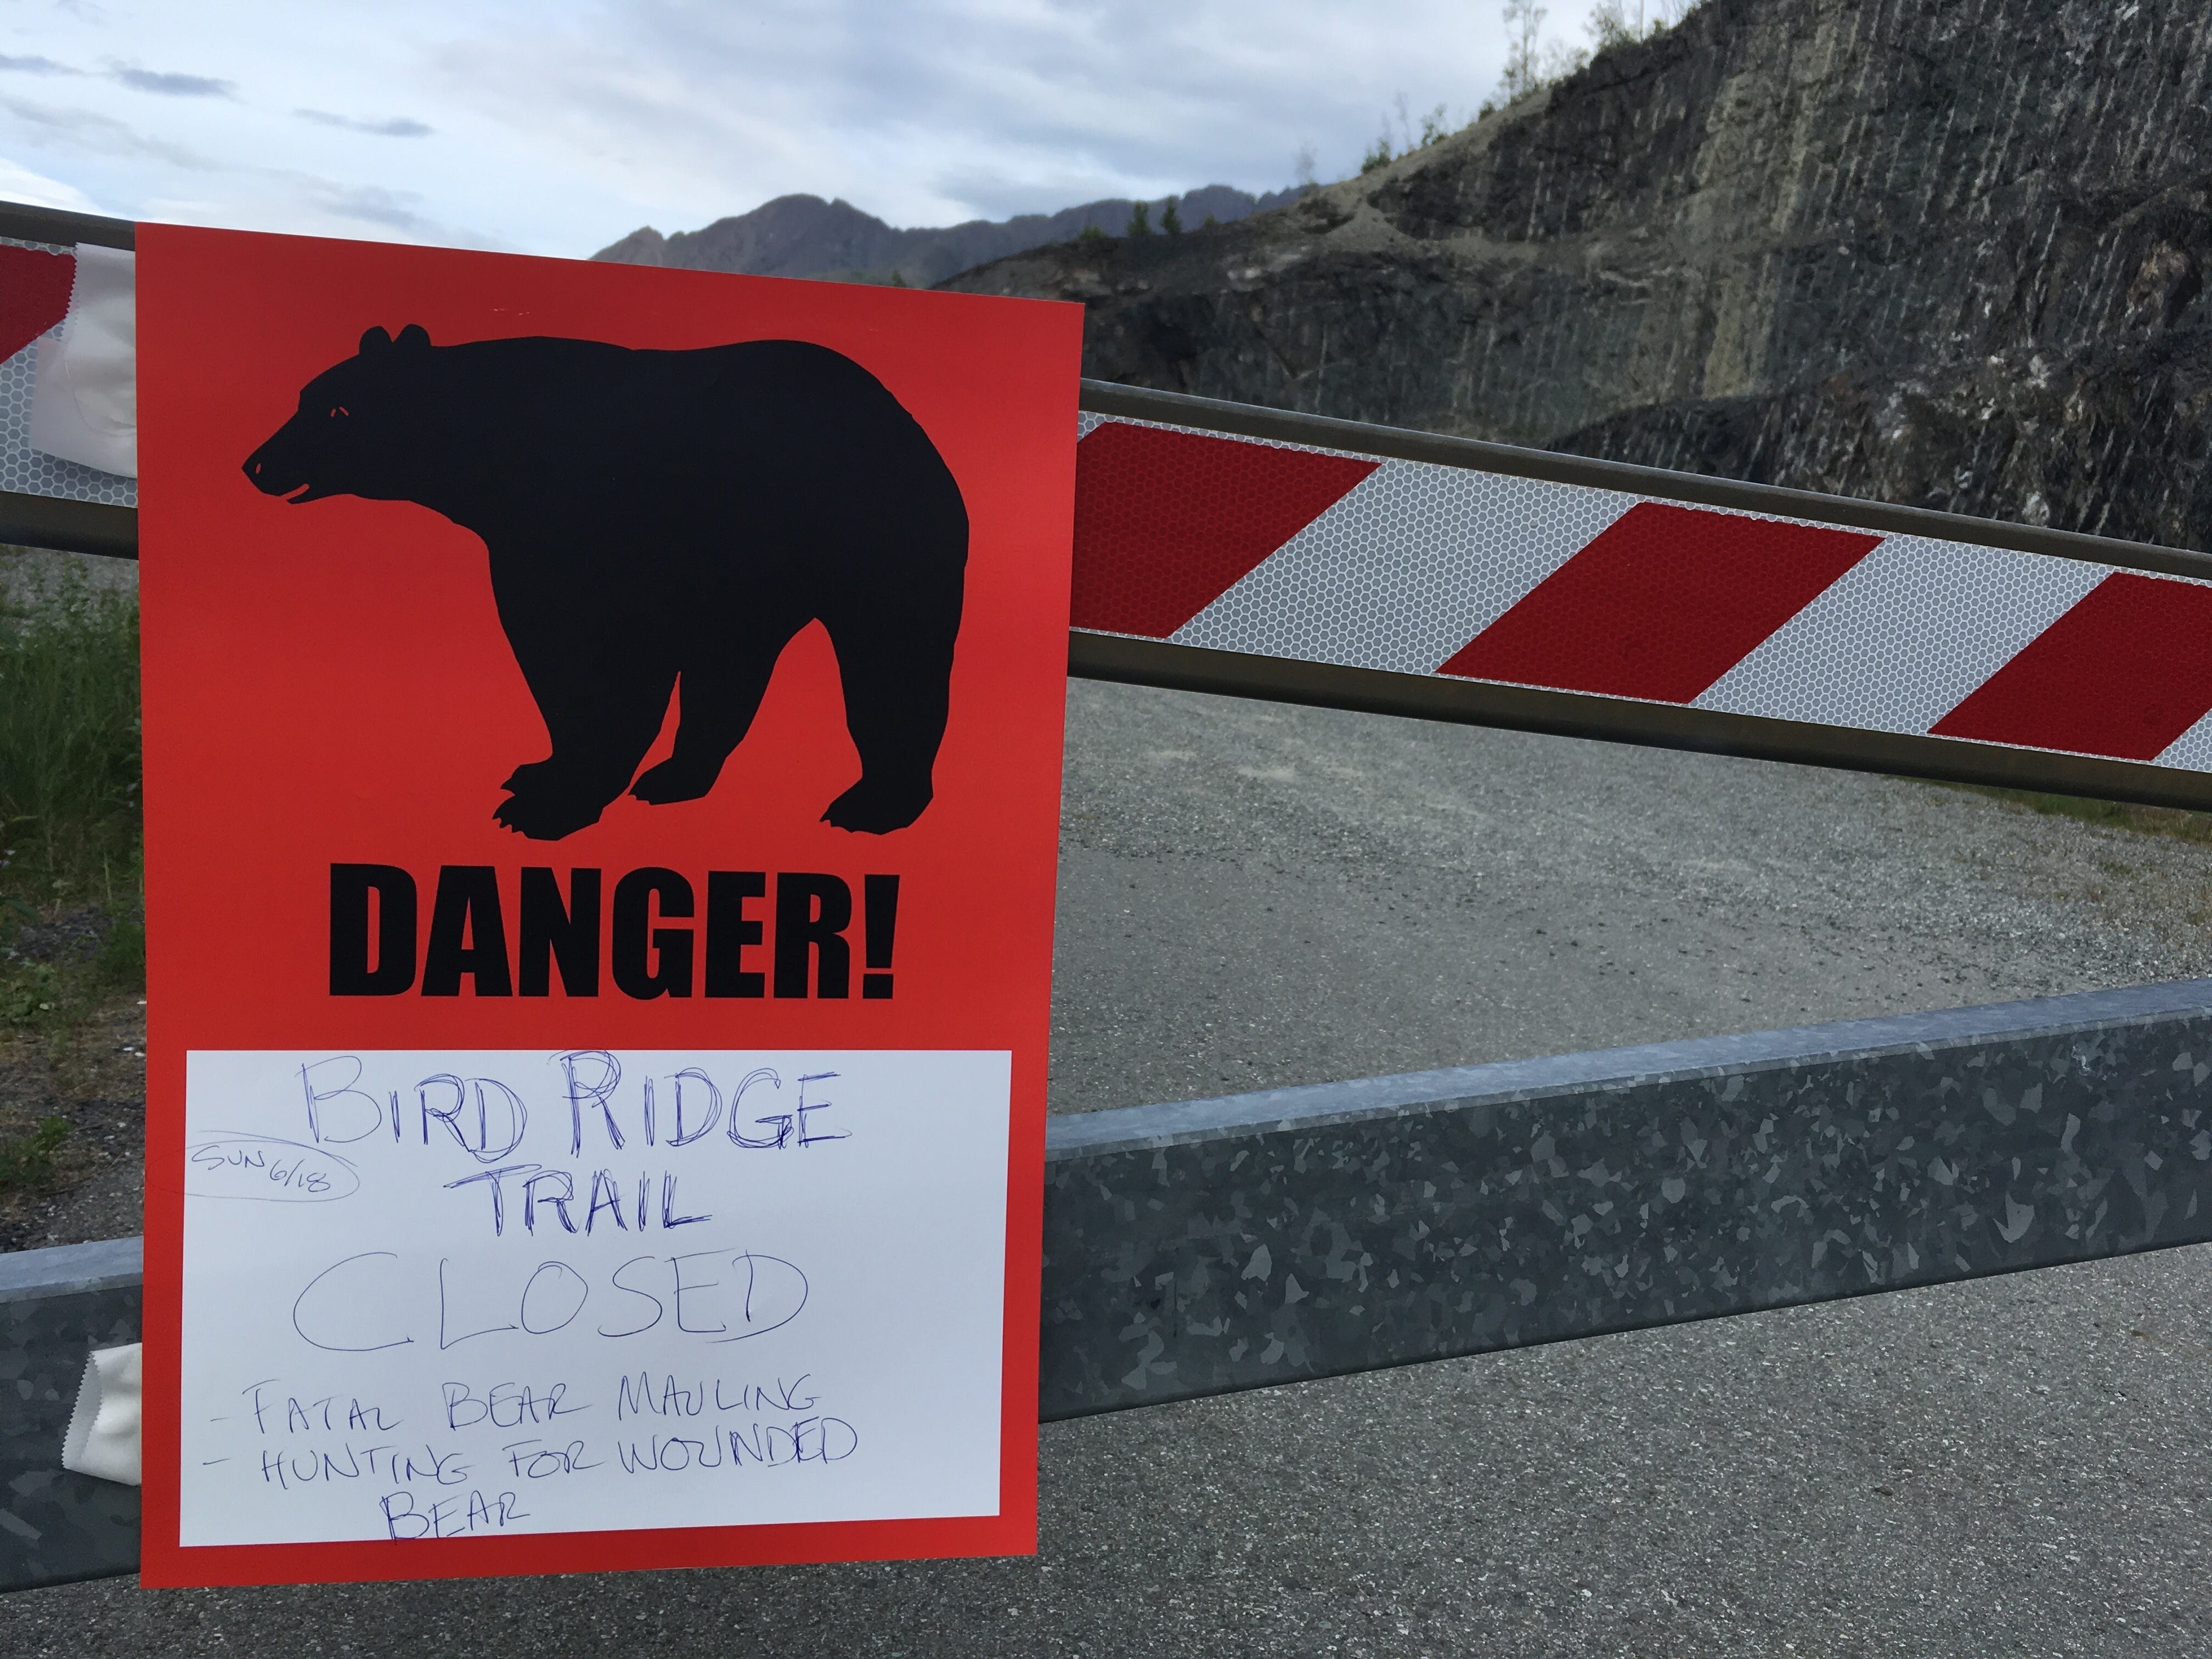 Bear was 'hyper-aggressive' in ferocious attack on two women